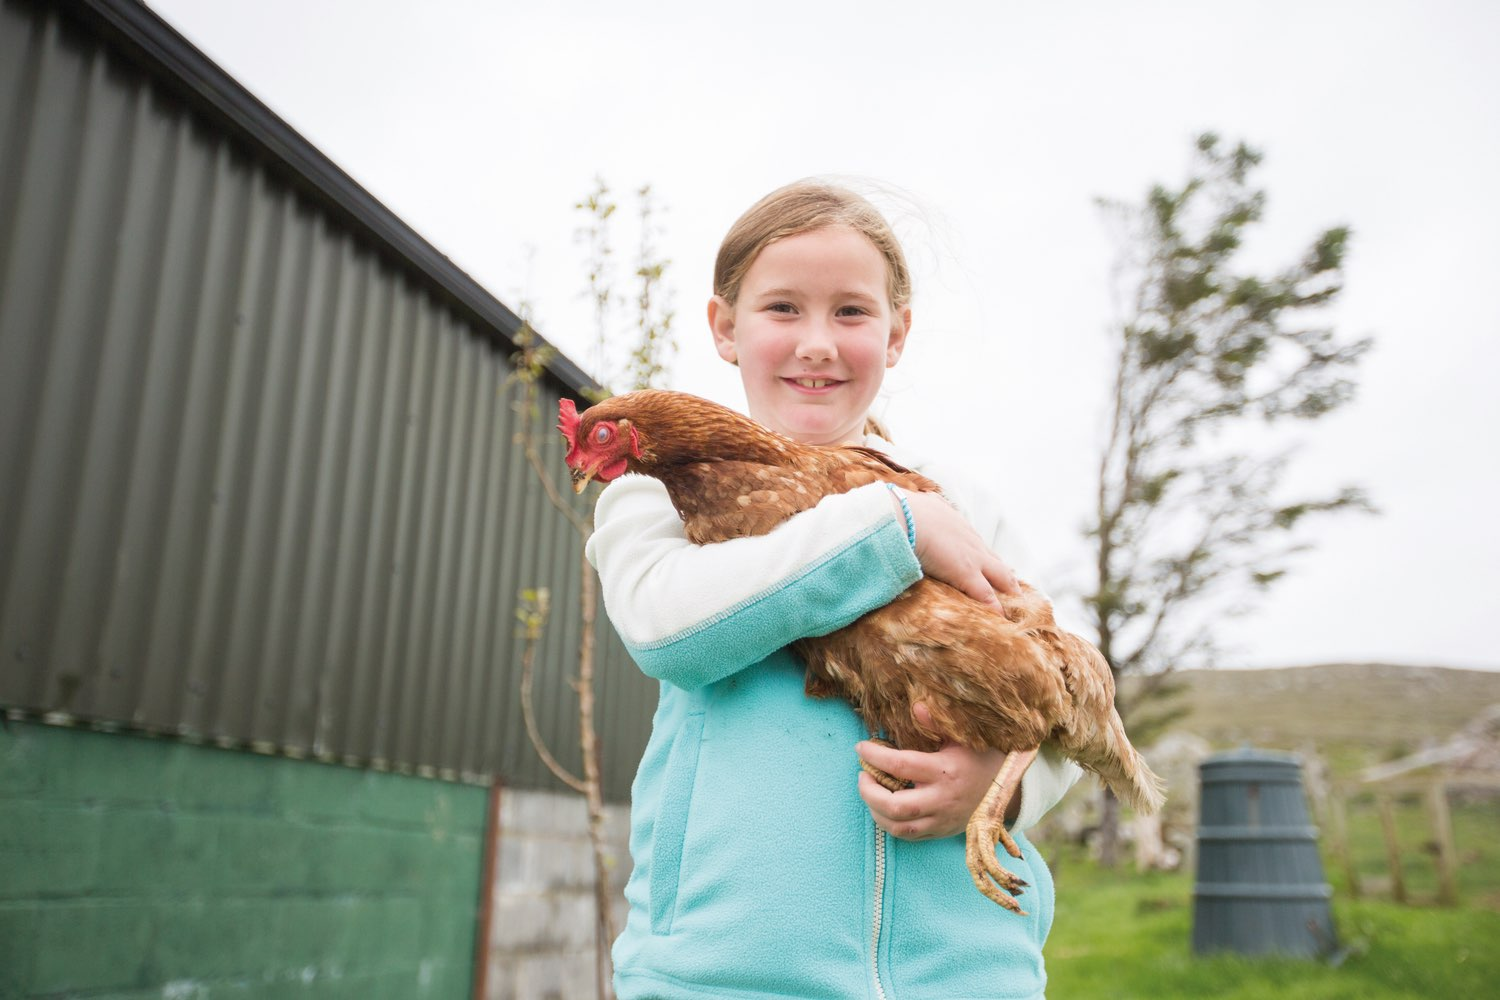 Gorham daughter holds onto chicken that is raised on their farm